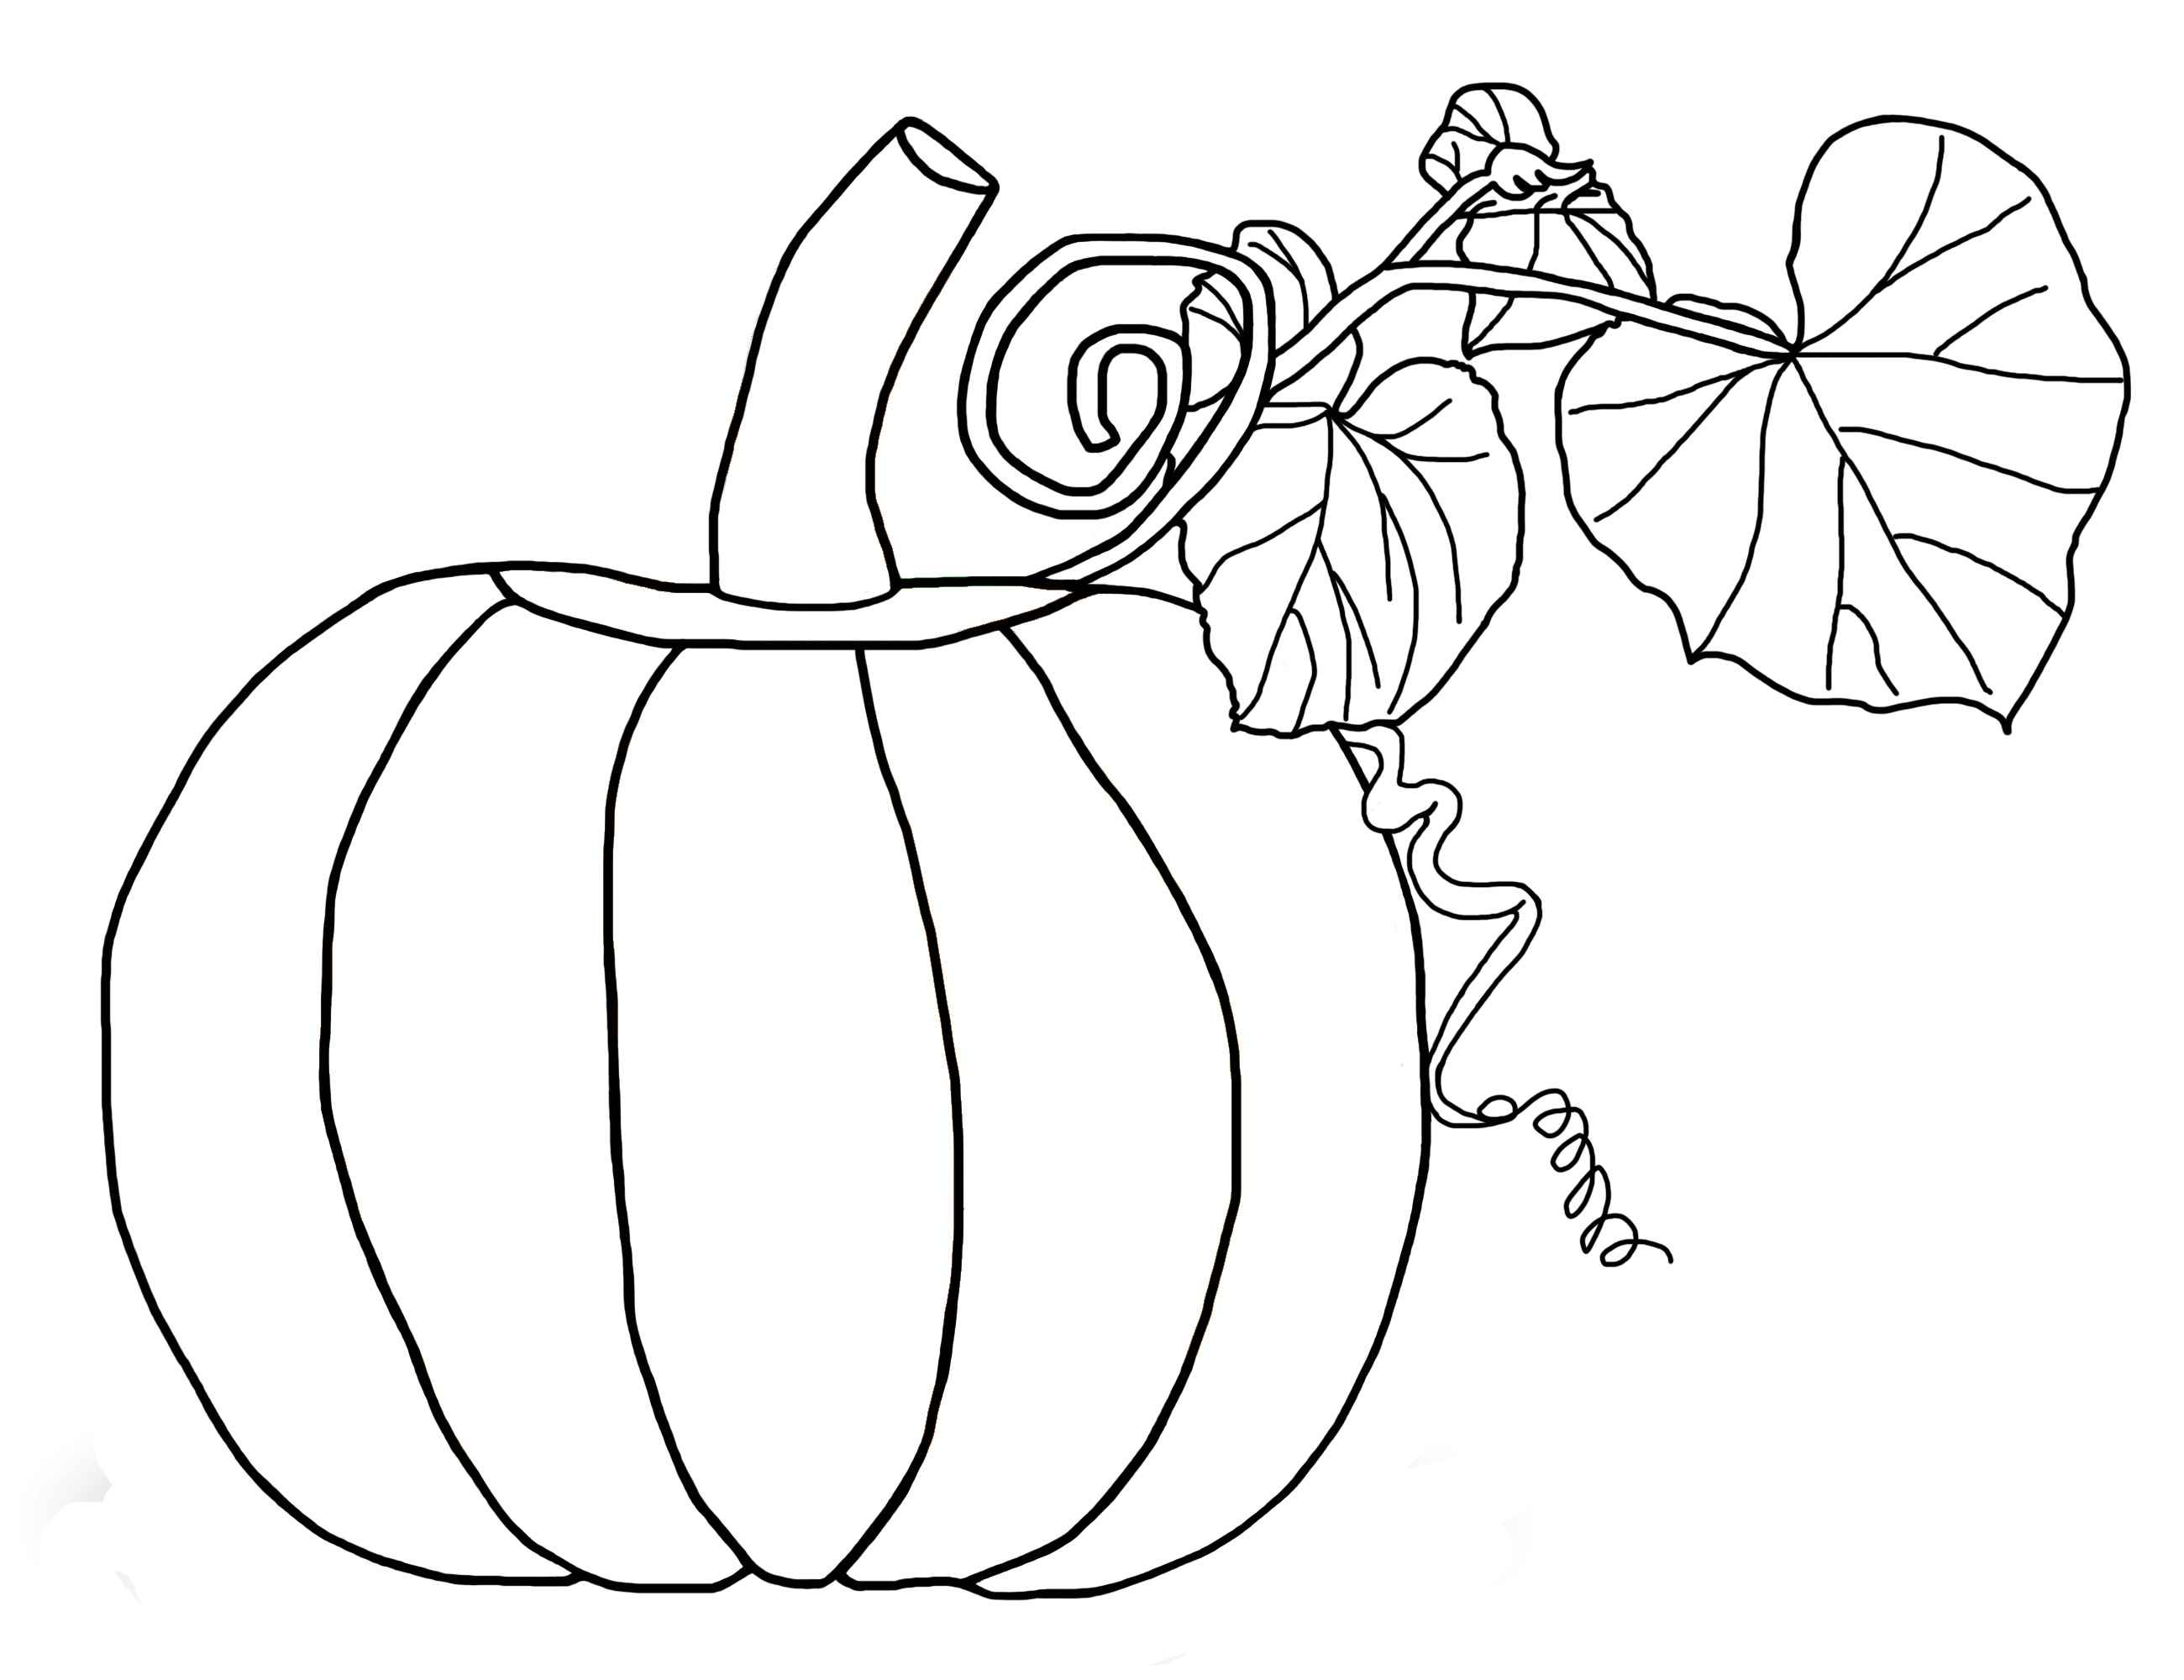 Free Pumpkin Coloring Pages For Kids - Free Printable Pumpkin Books